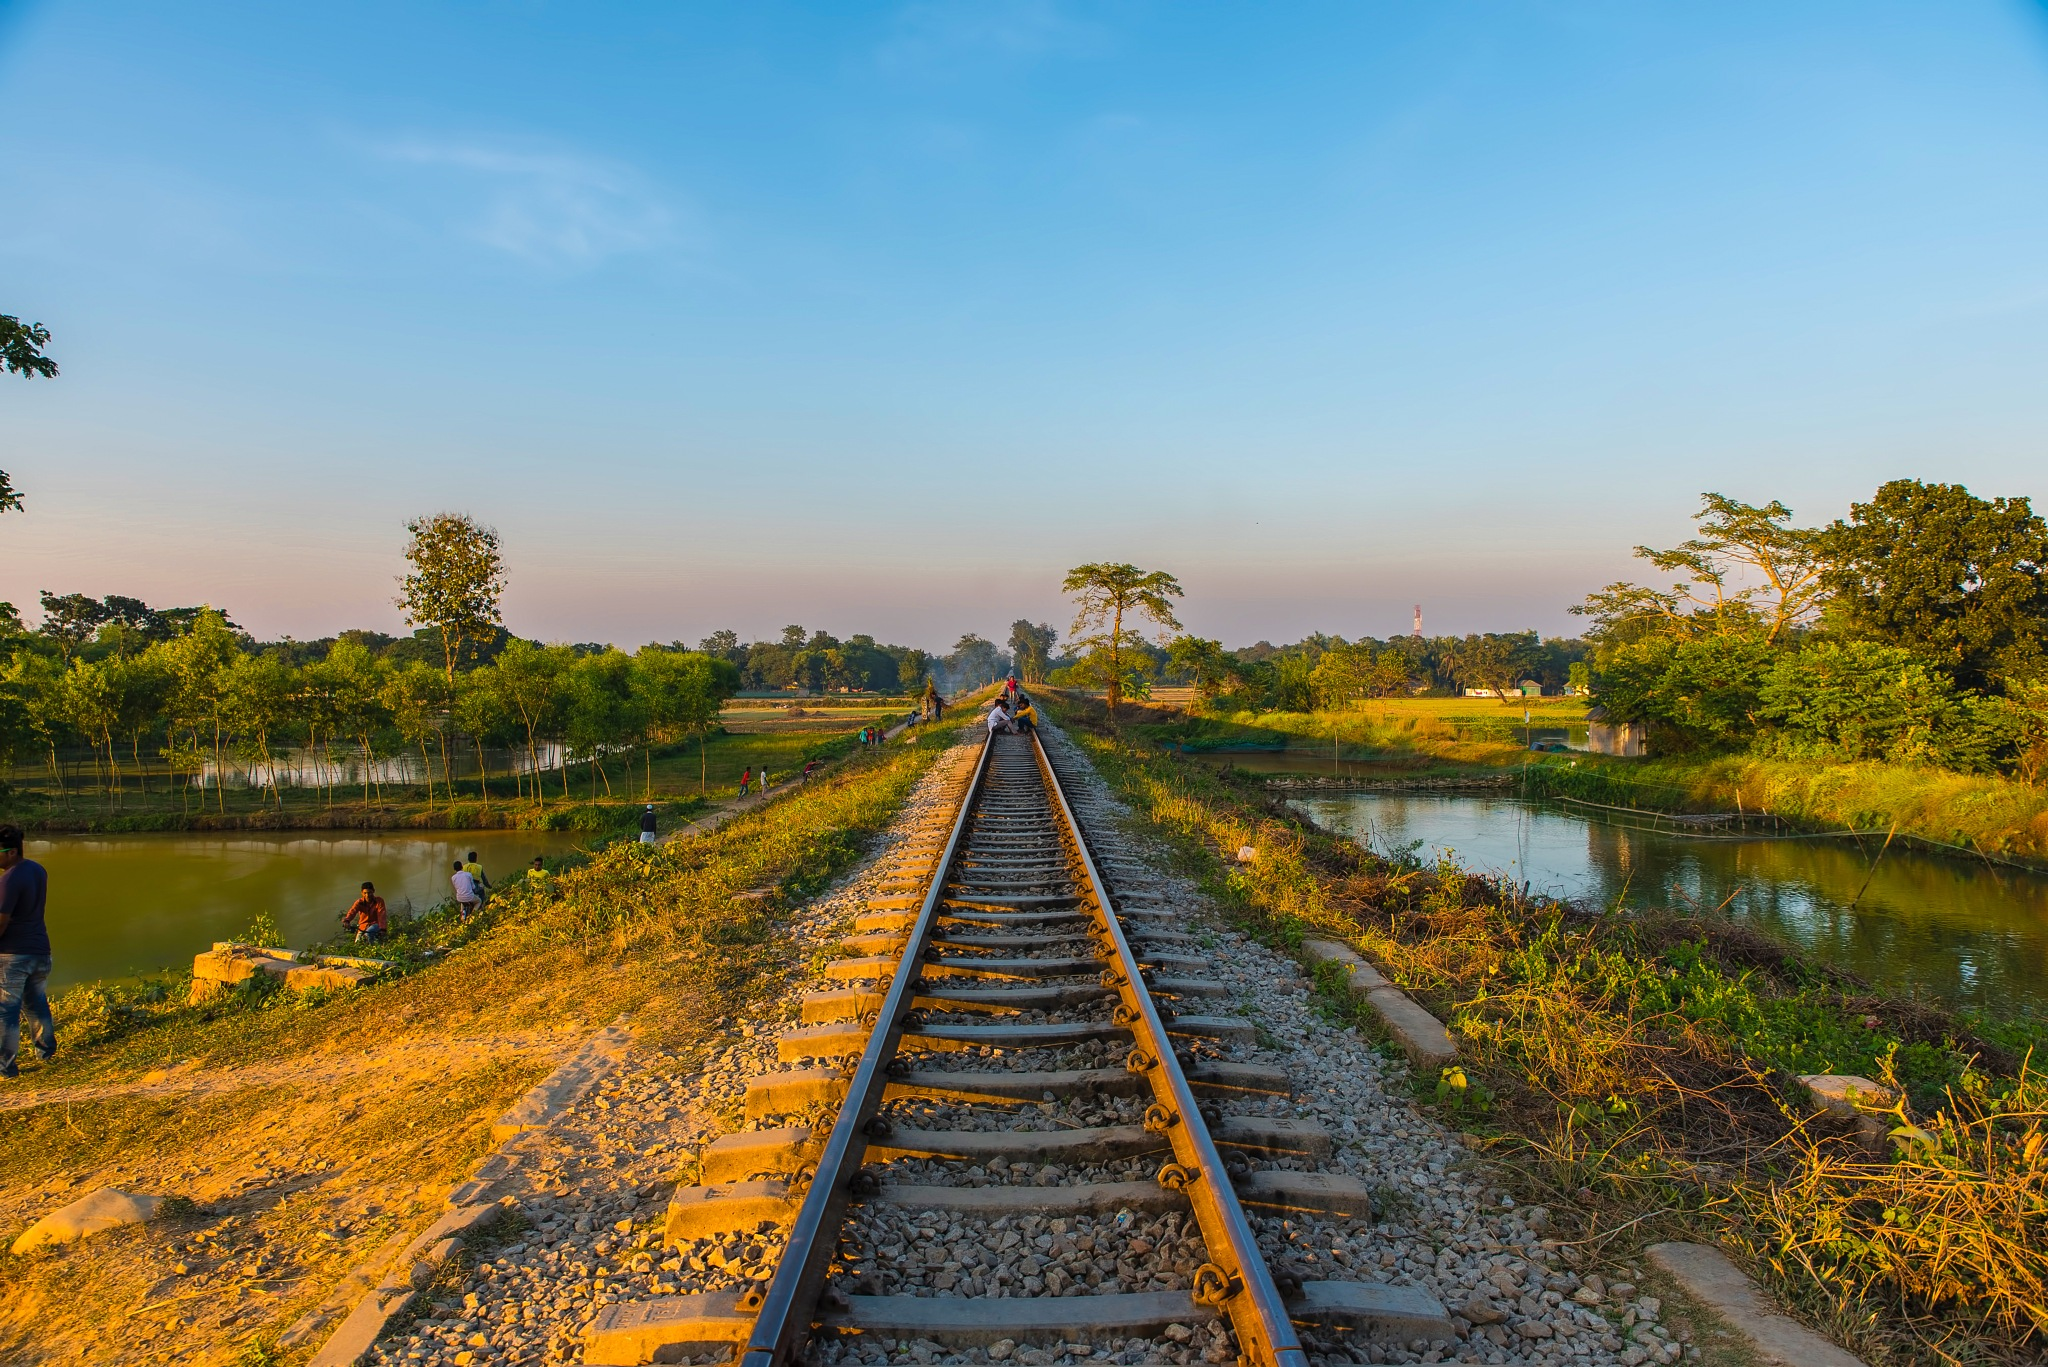 Railway by Md Golam Murshed